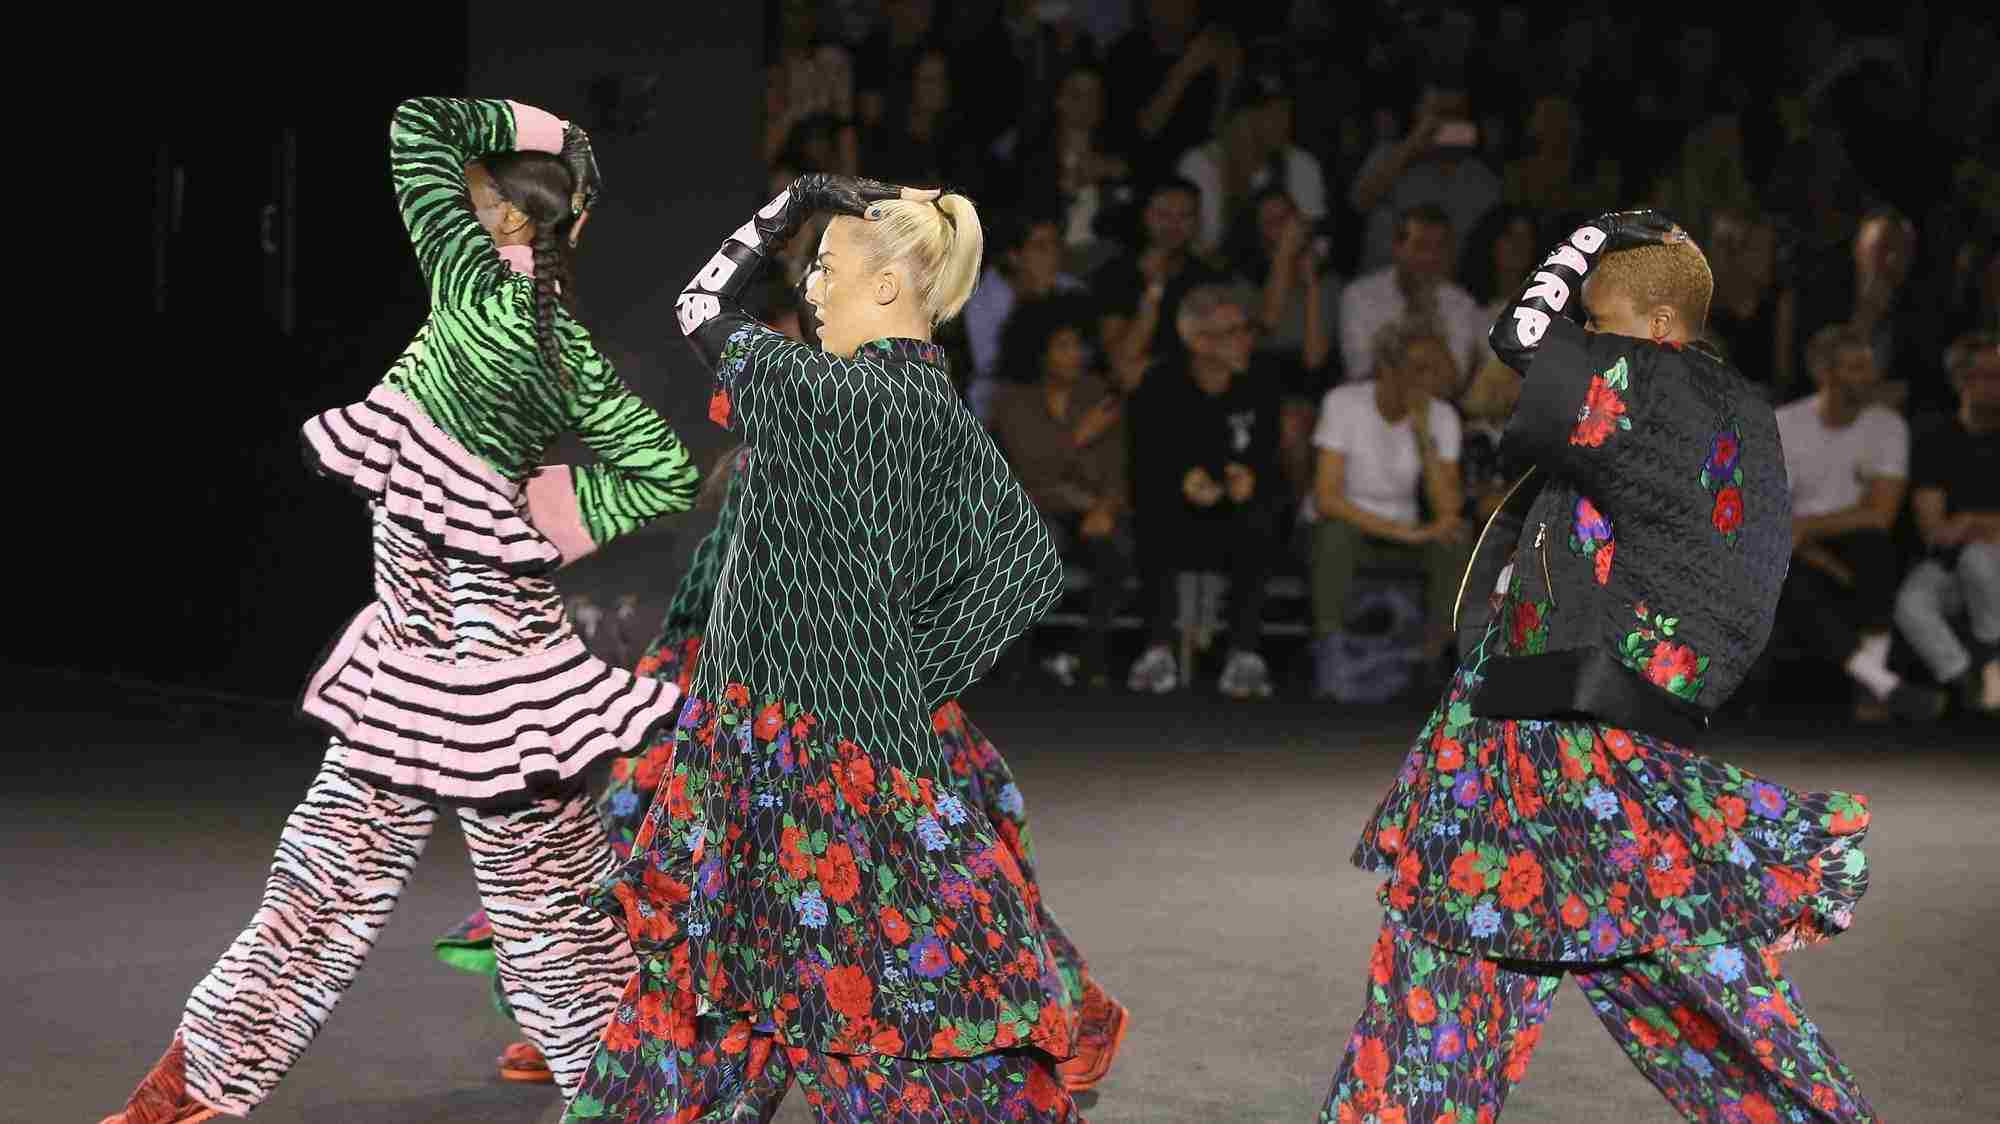 last-nights-kenzo-x-hm-show-was-a-visual-feast-1476960952